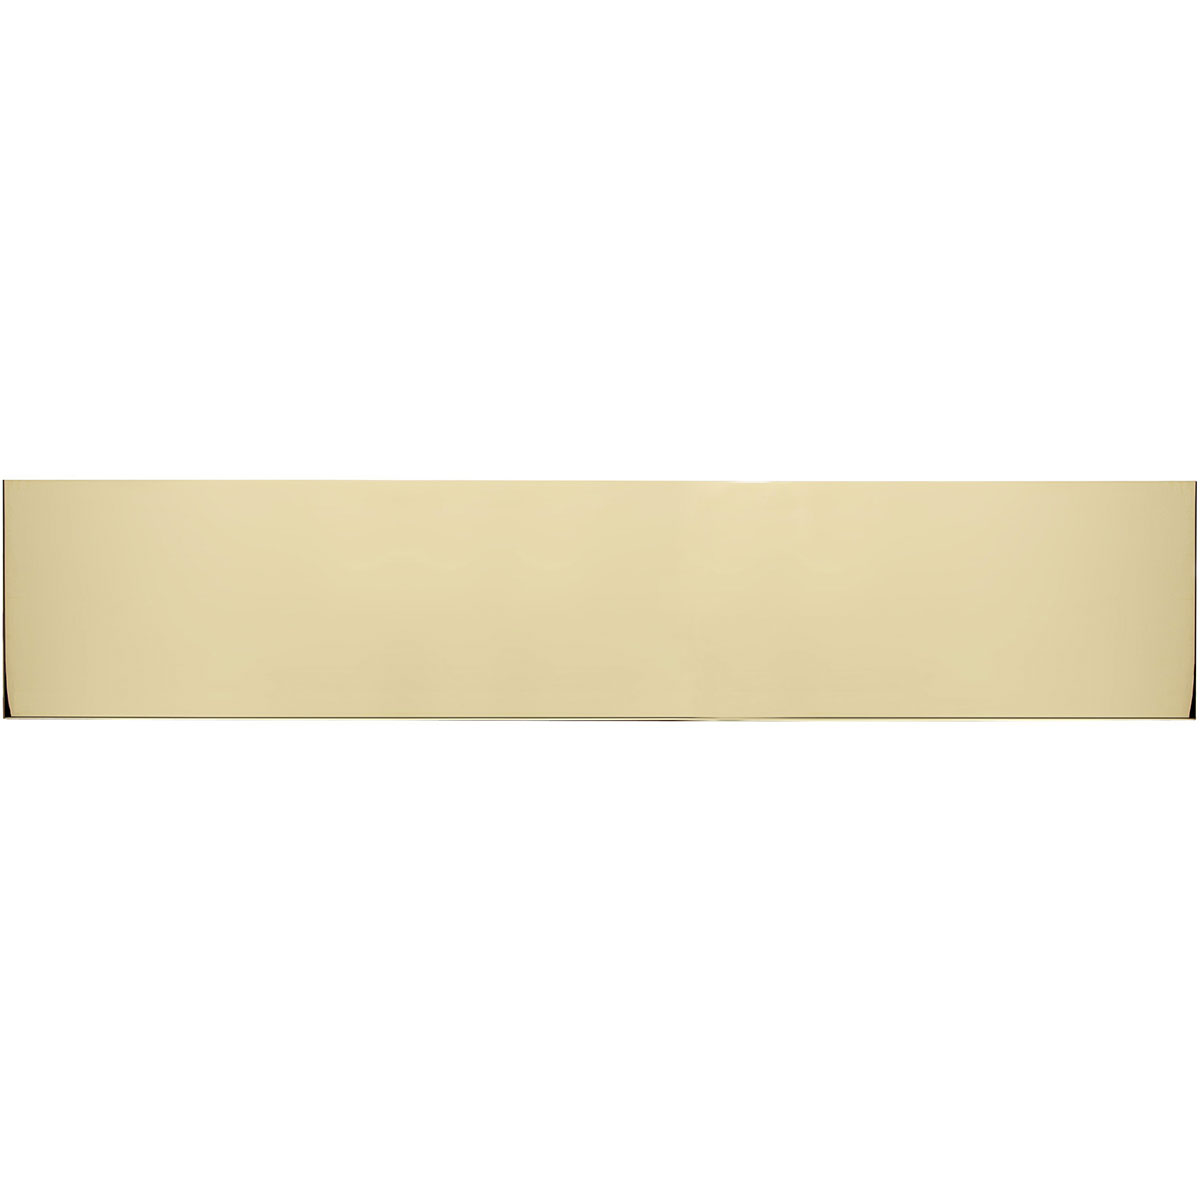 Brass accents a09 p0828 605mag 28 inch w x 8 inch h kick pla for Magnetic kick plates for exterior doors